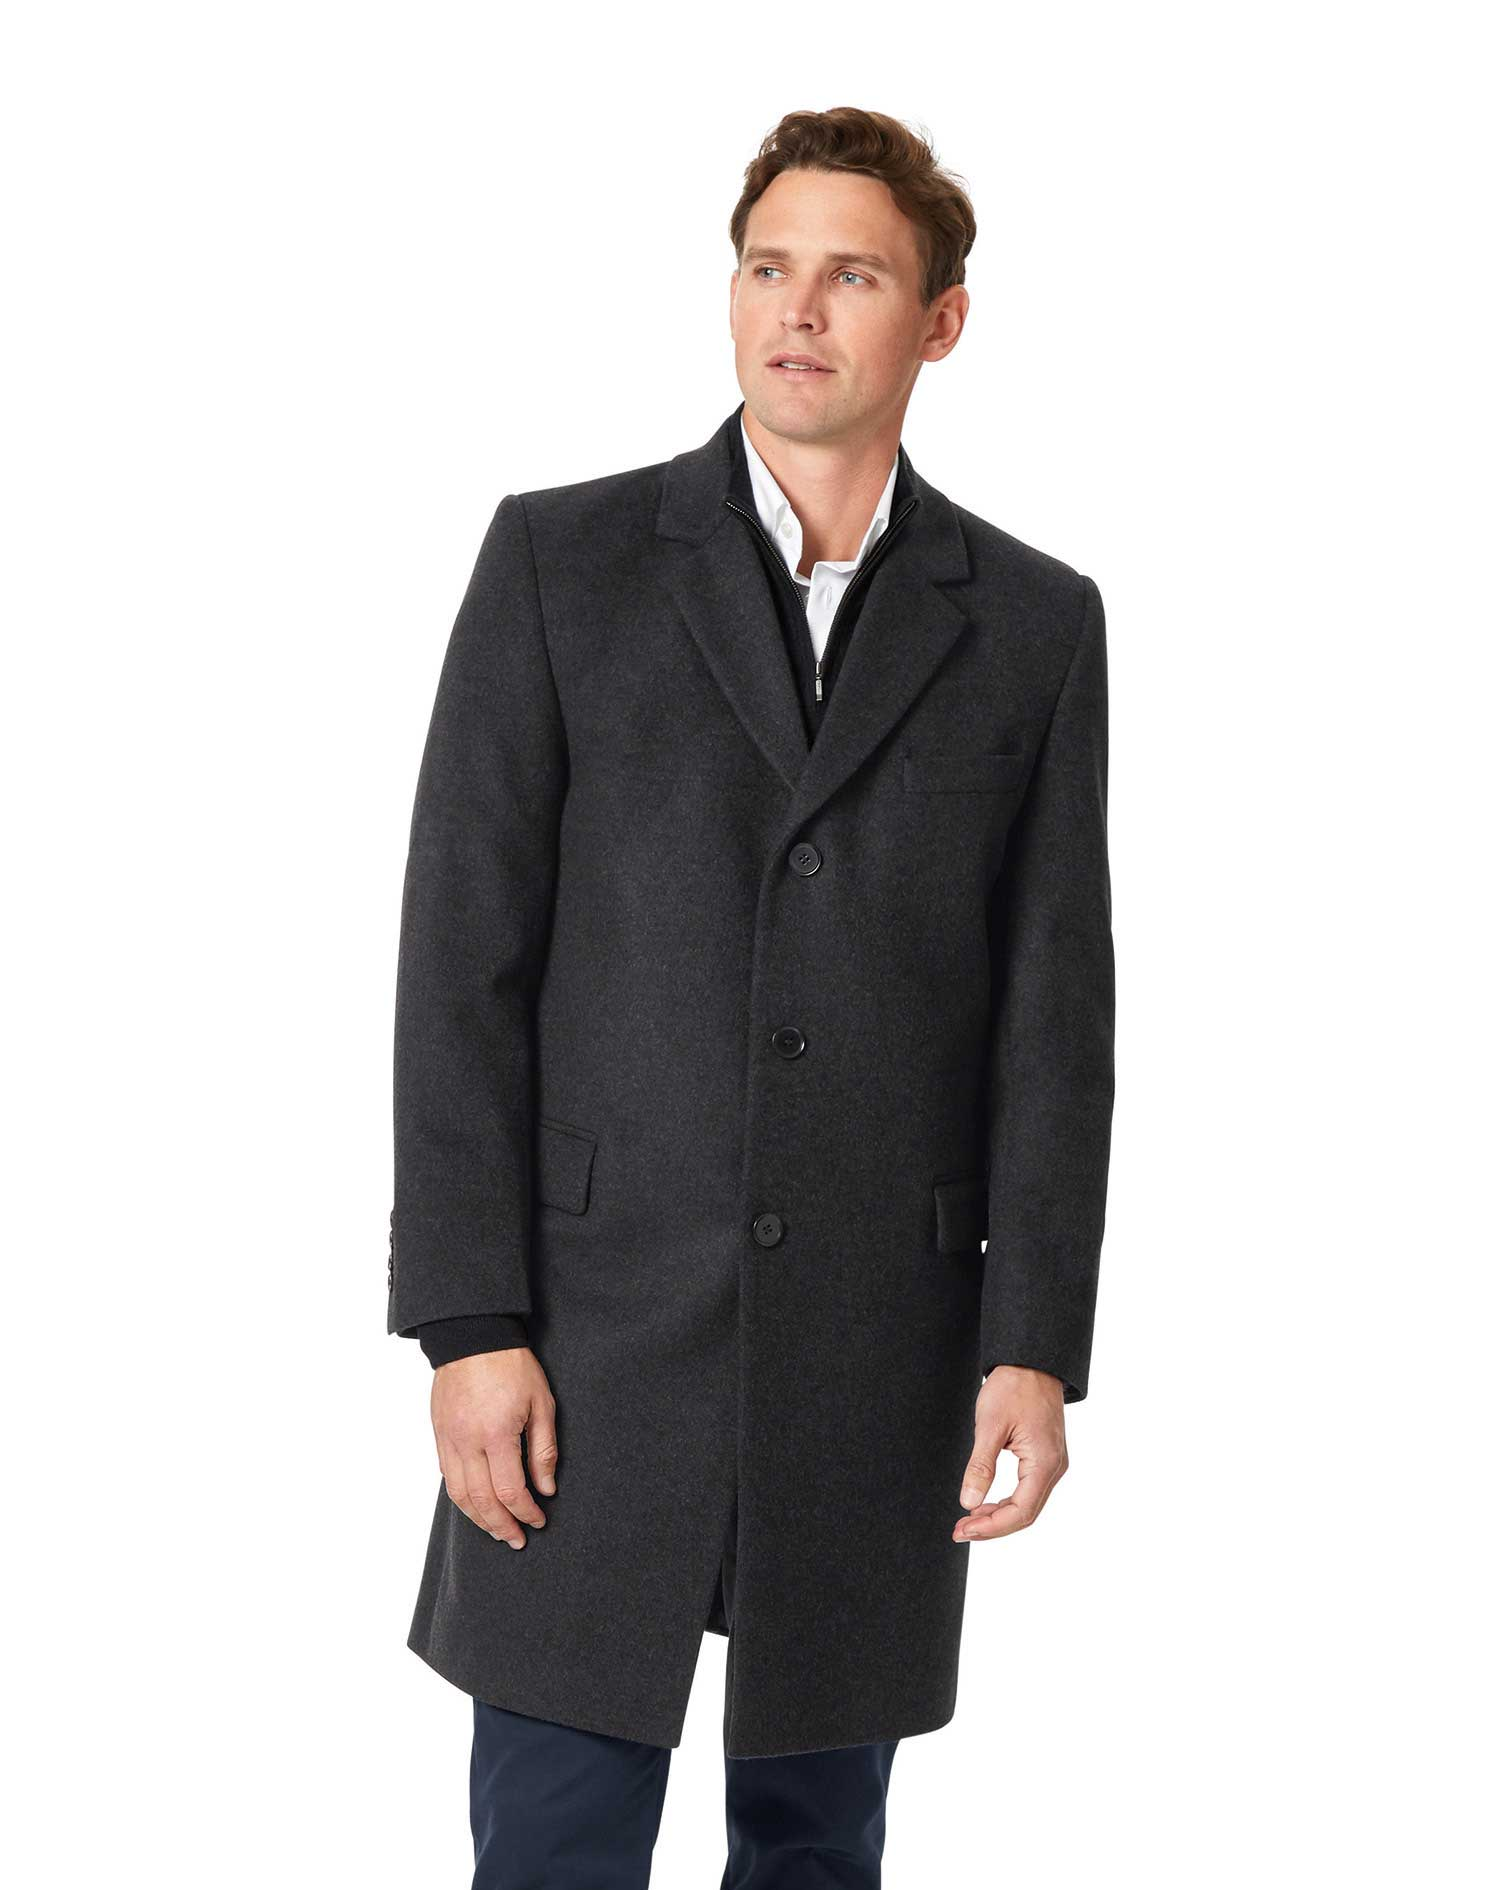 Grey Wool and Cashmere Overcoat Size 42 Regular by Charles Tyrwhitt